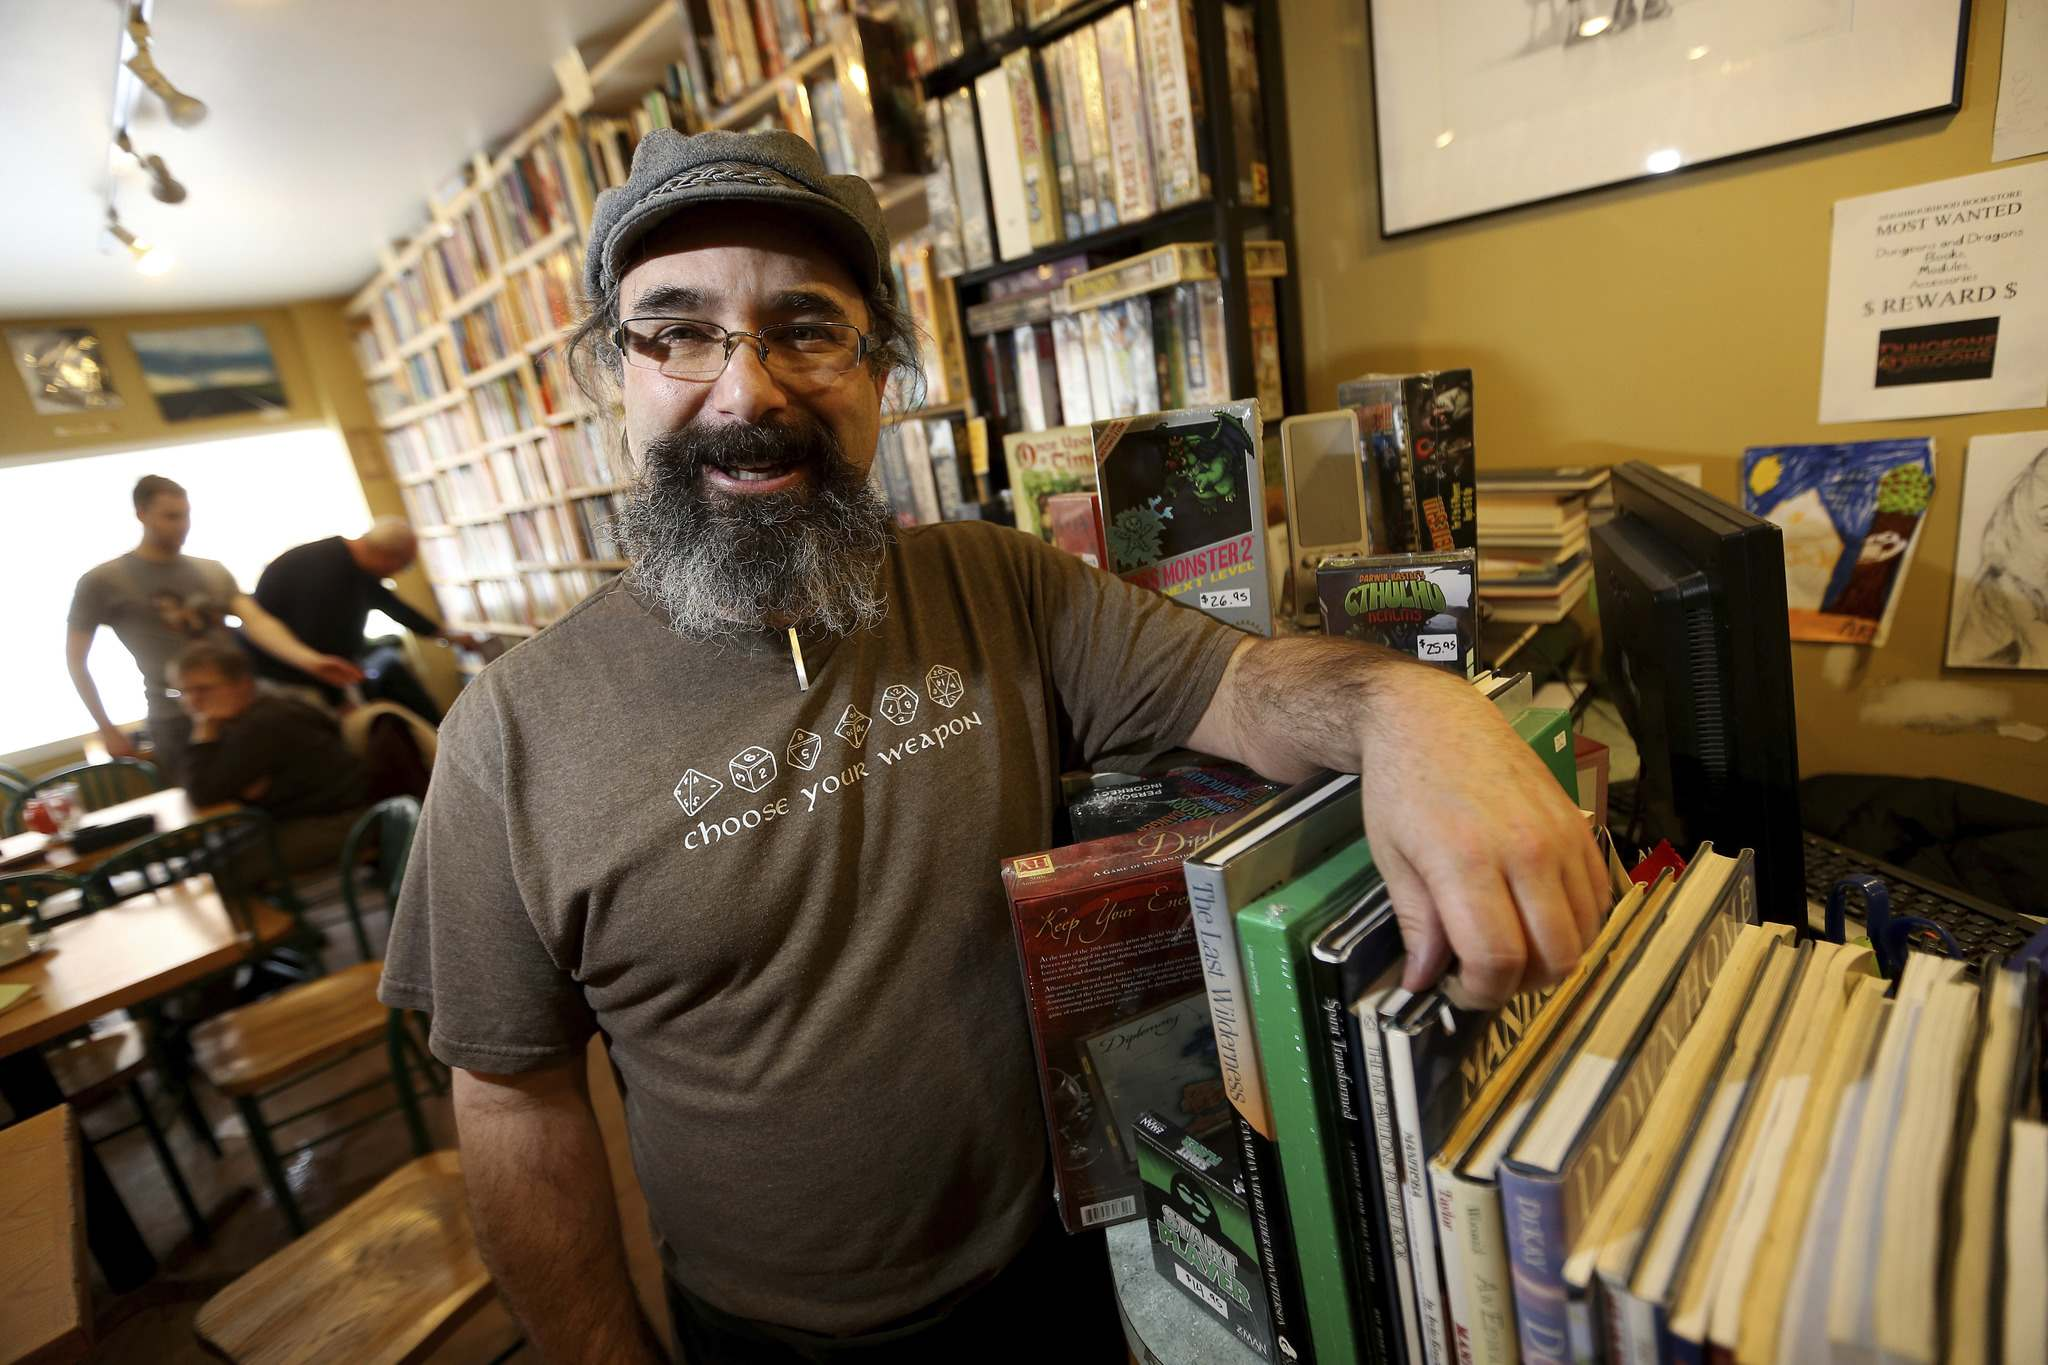 TREVOR HAGAN / WINNIPEG FREE PRESS Bill Fugler owns the Neighbourhood Book Store & Café.